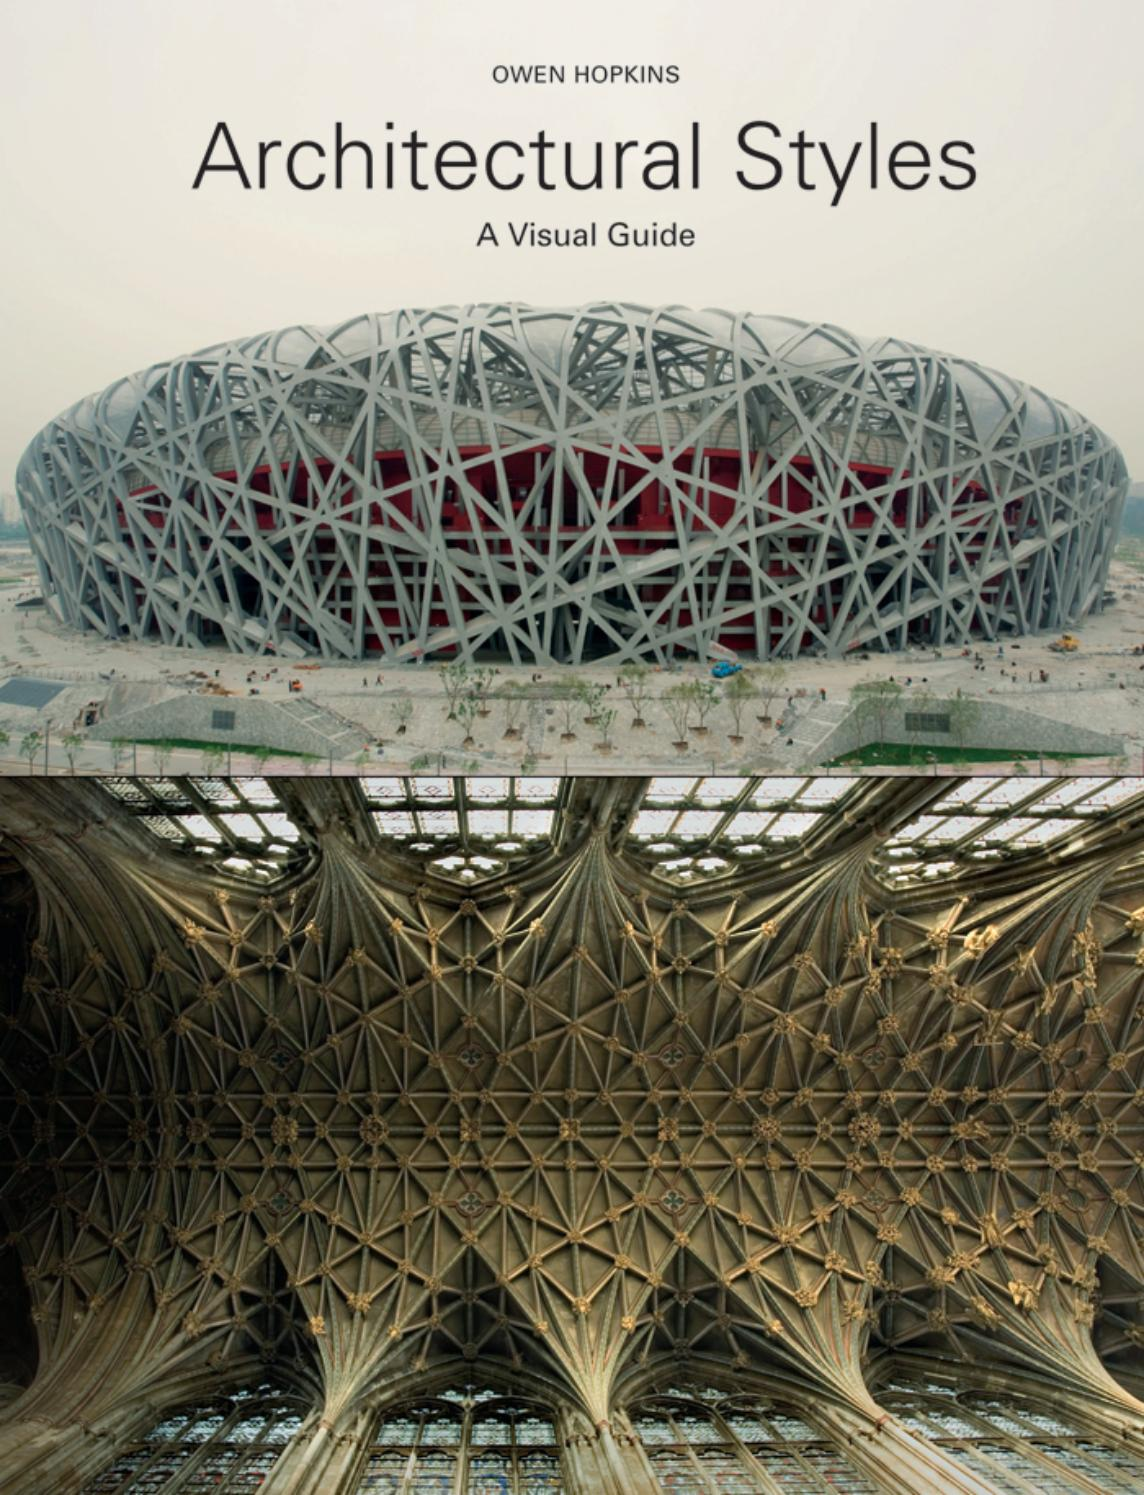 Owen hopkins architectural styles a visual guide 2014 by thanhcn issuu